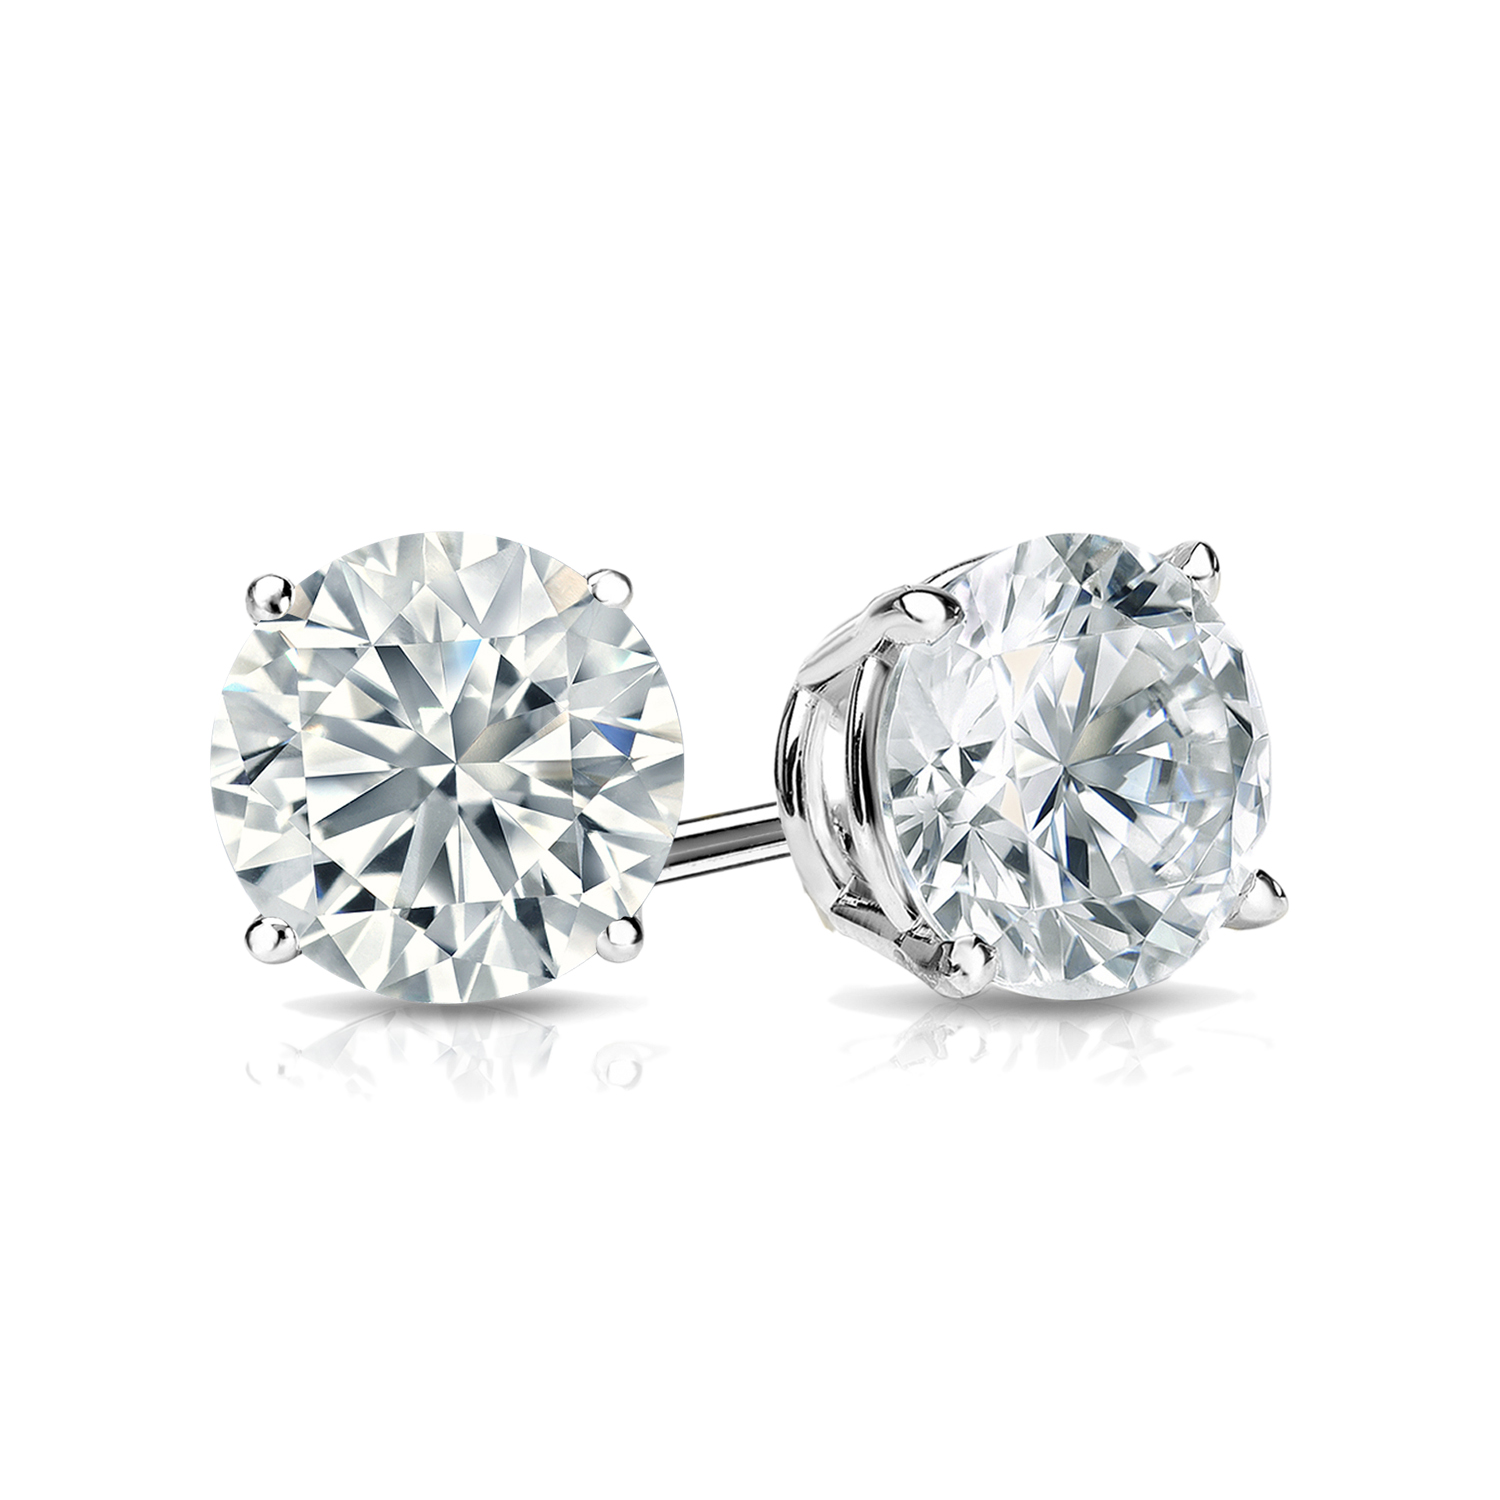 4-Prong Basket Diamond Stud Earrings in 14k White Gold